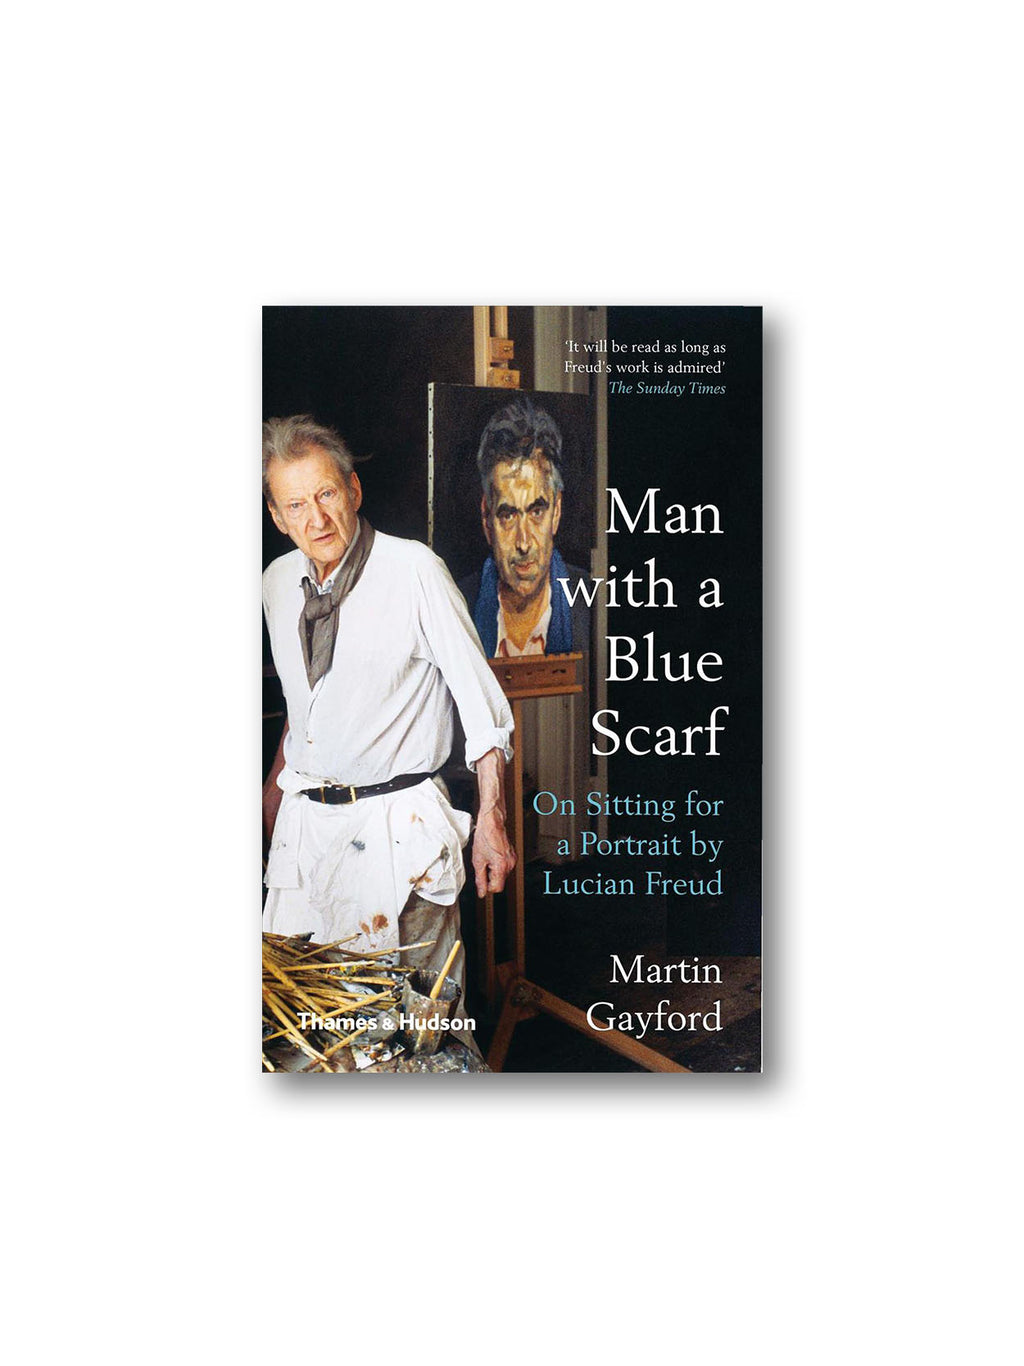 Man with a Blue Scarf : On Sitting for a Portrait by Lucian Freud